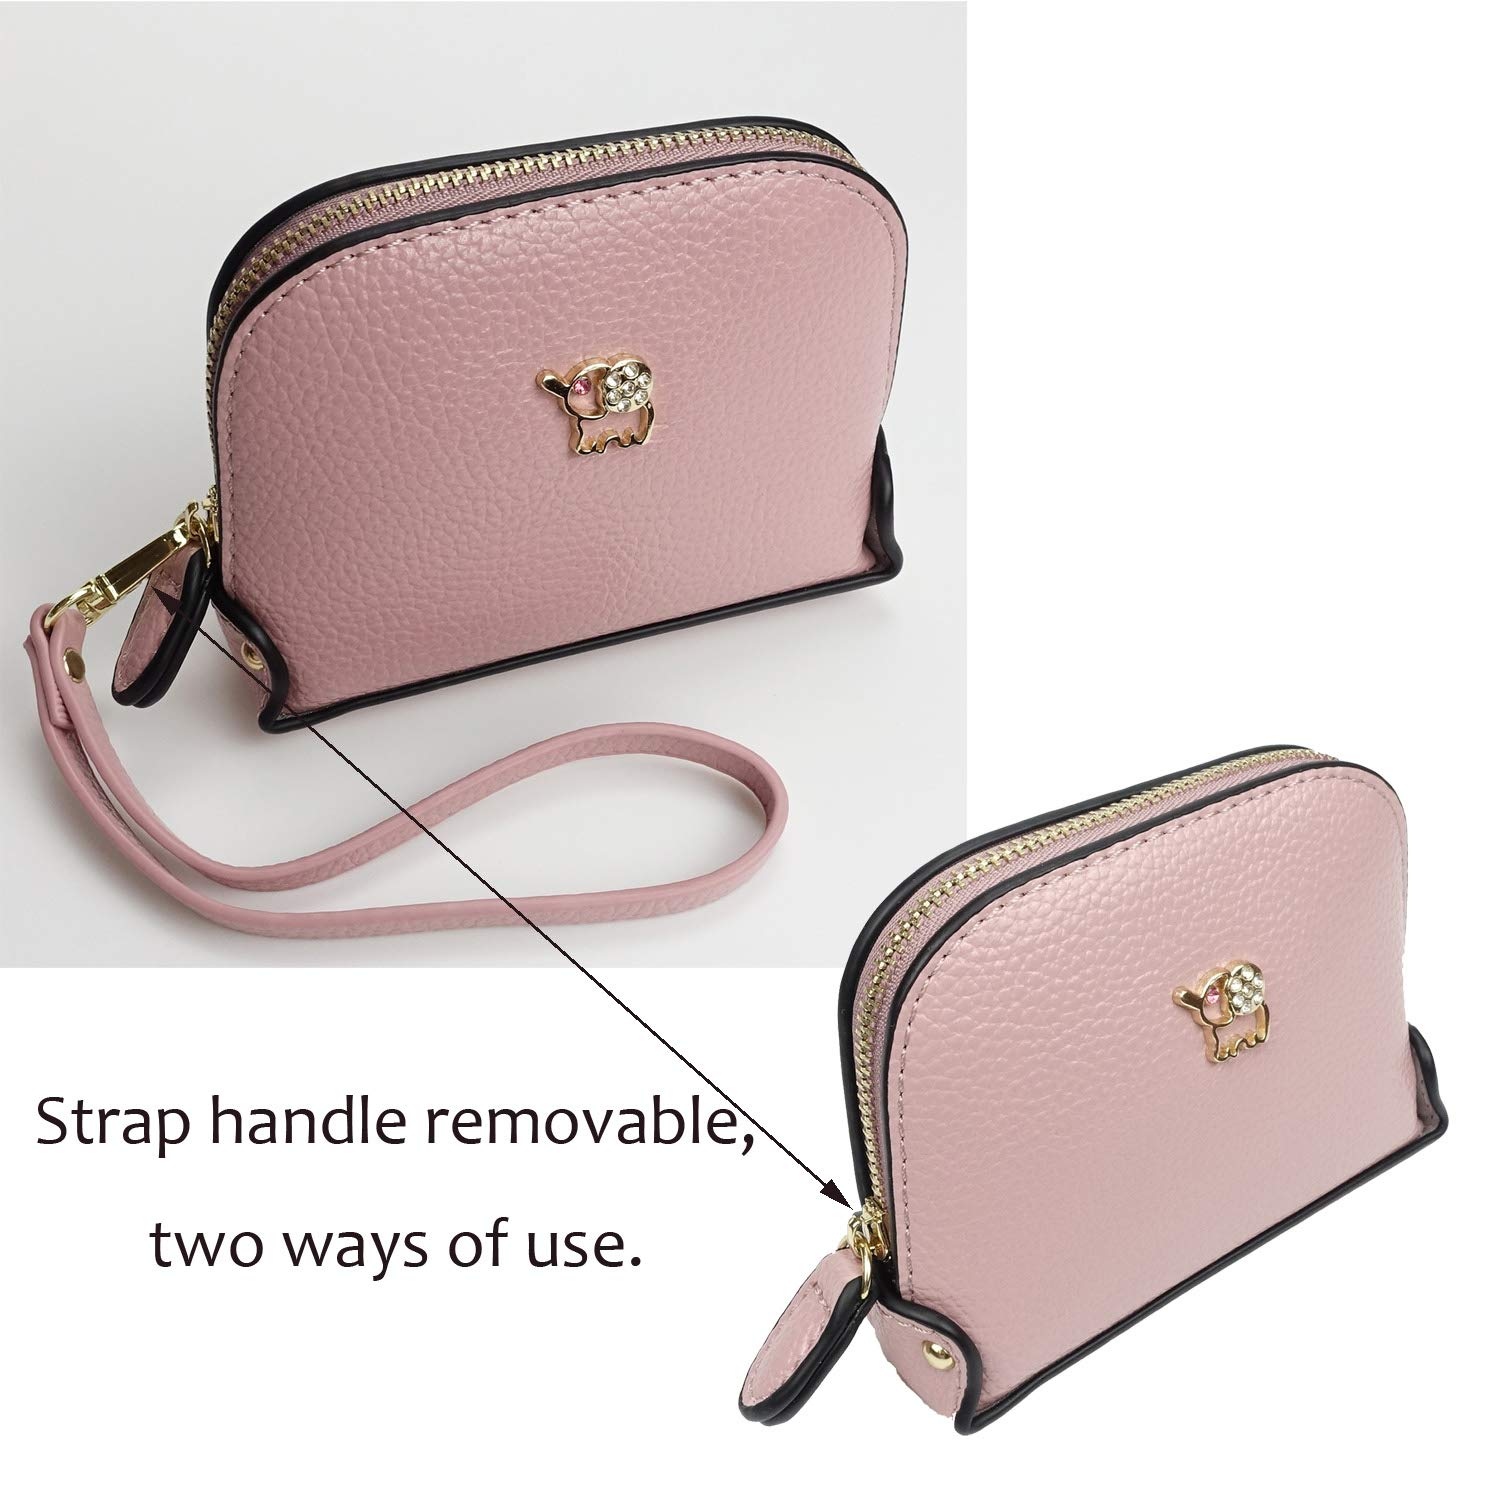 Coin Purse Wallet leather Wristlet Handbags with Wrist Strap Cute Mini Designer Pouch Great Gifts for Women Girls(Elephant Pink) by JZE (Image #7)